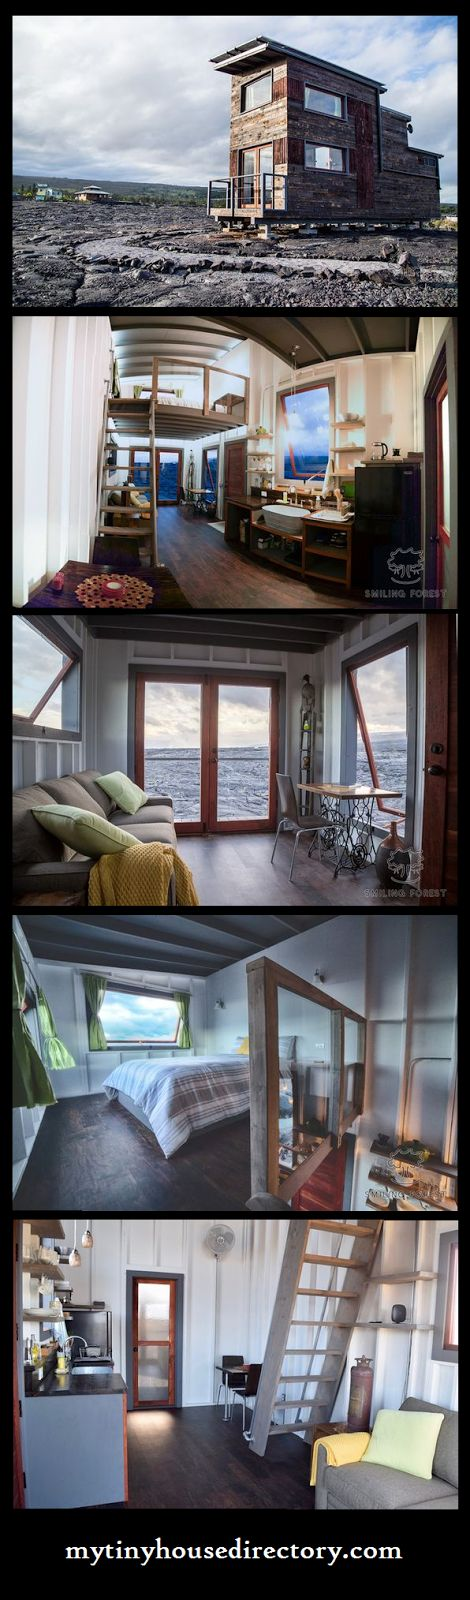 Simplicity and Elegance in a Tiny Home at the base of a volcano!